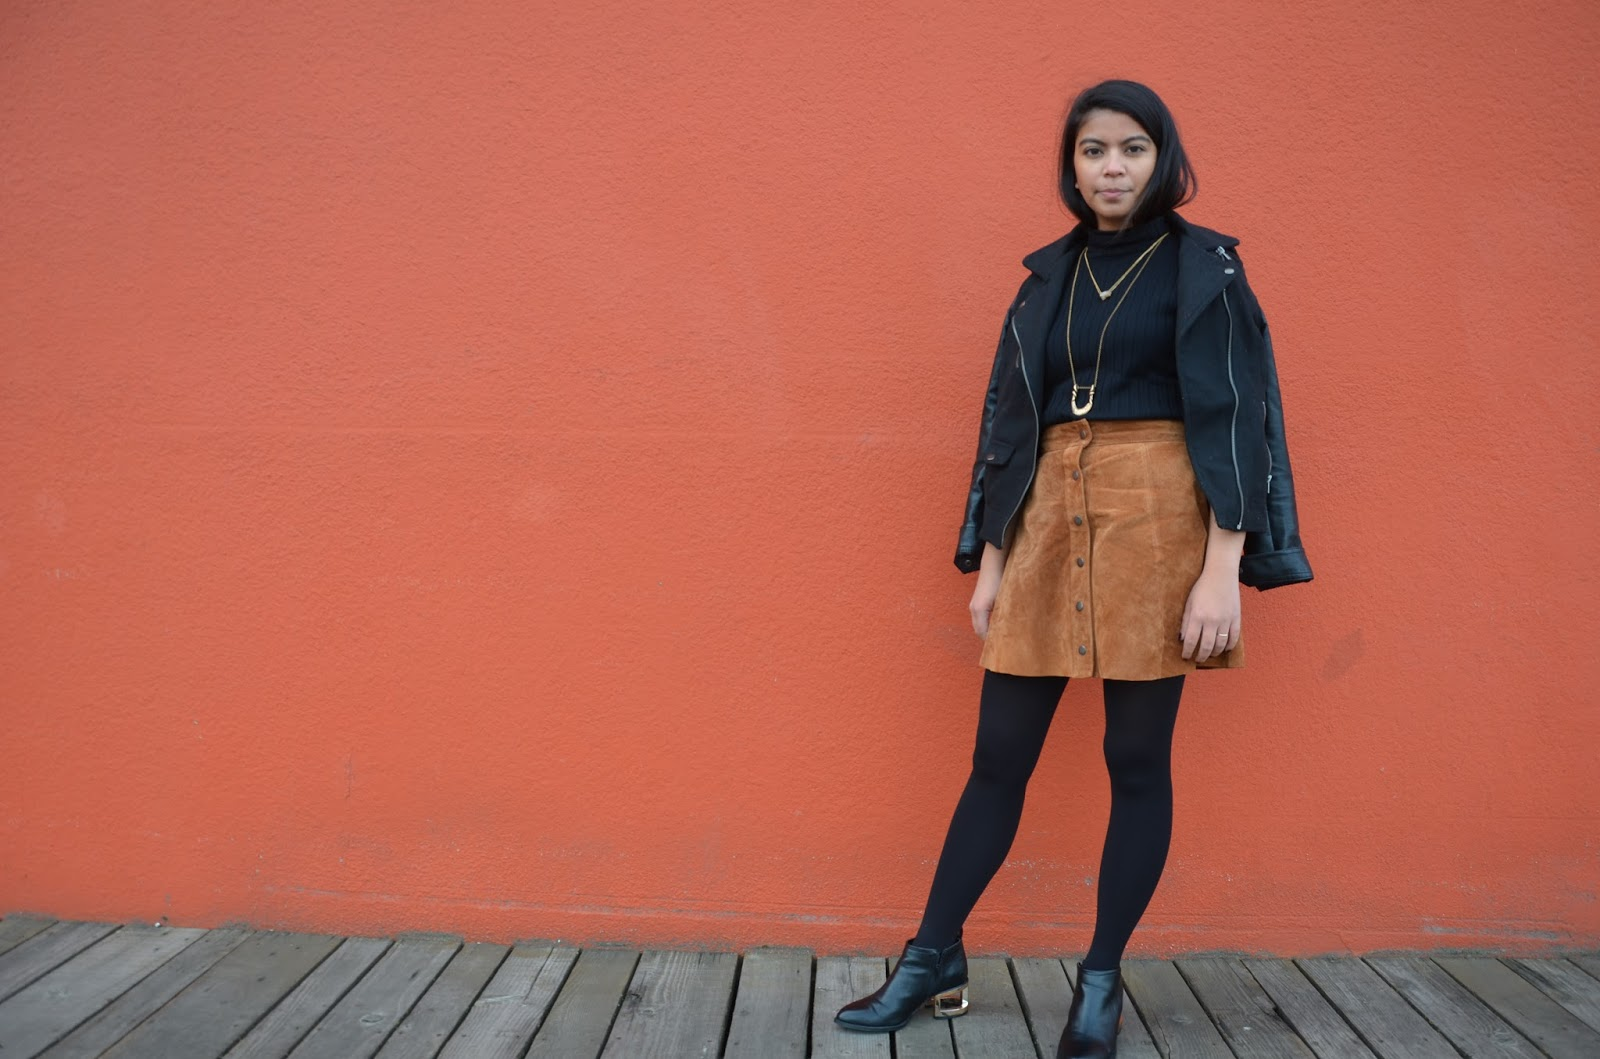 suede button up skirt, a line skirt, black turtleneck, black booties with gold hardware, portland blogger, fashion blogger, style diaries, forever 21, thrifted, affordable fashion, oregon blogger, nested yellow jewelry